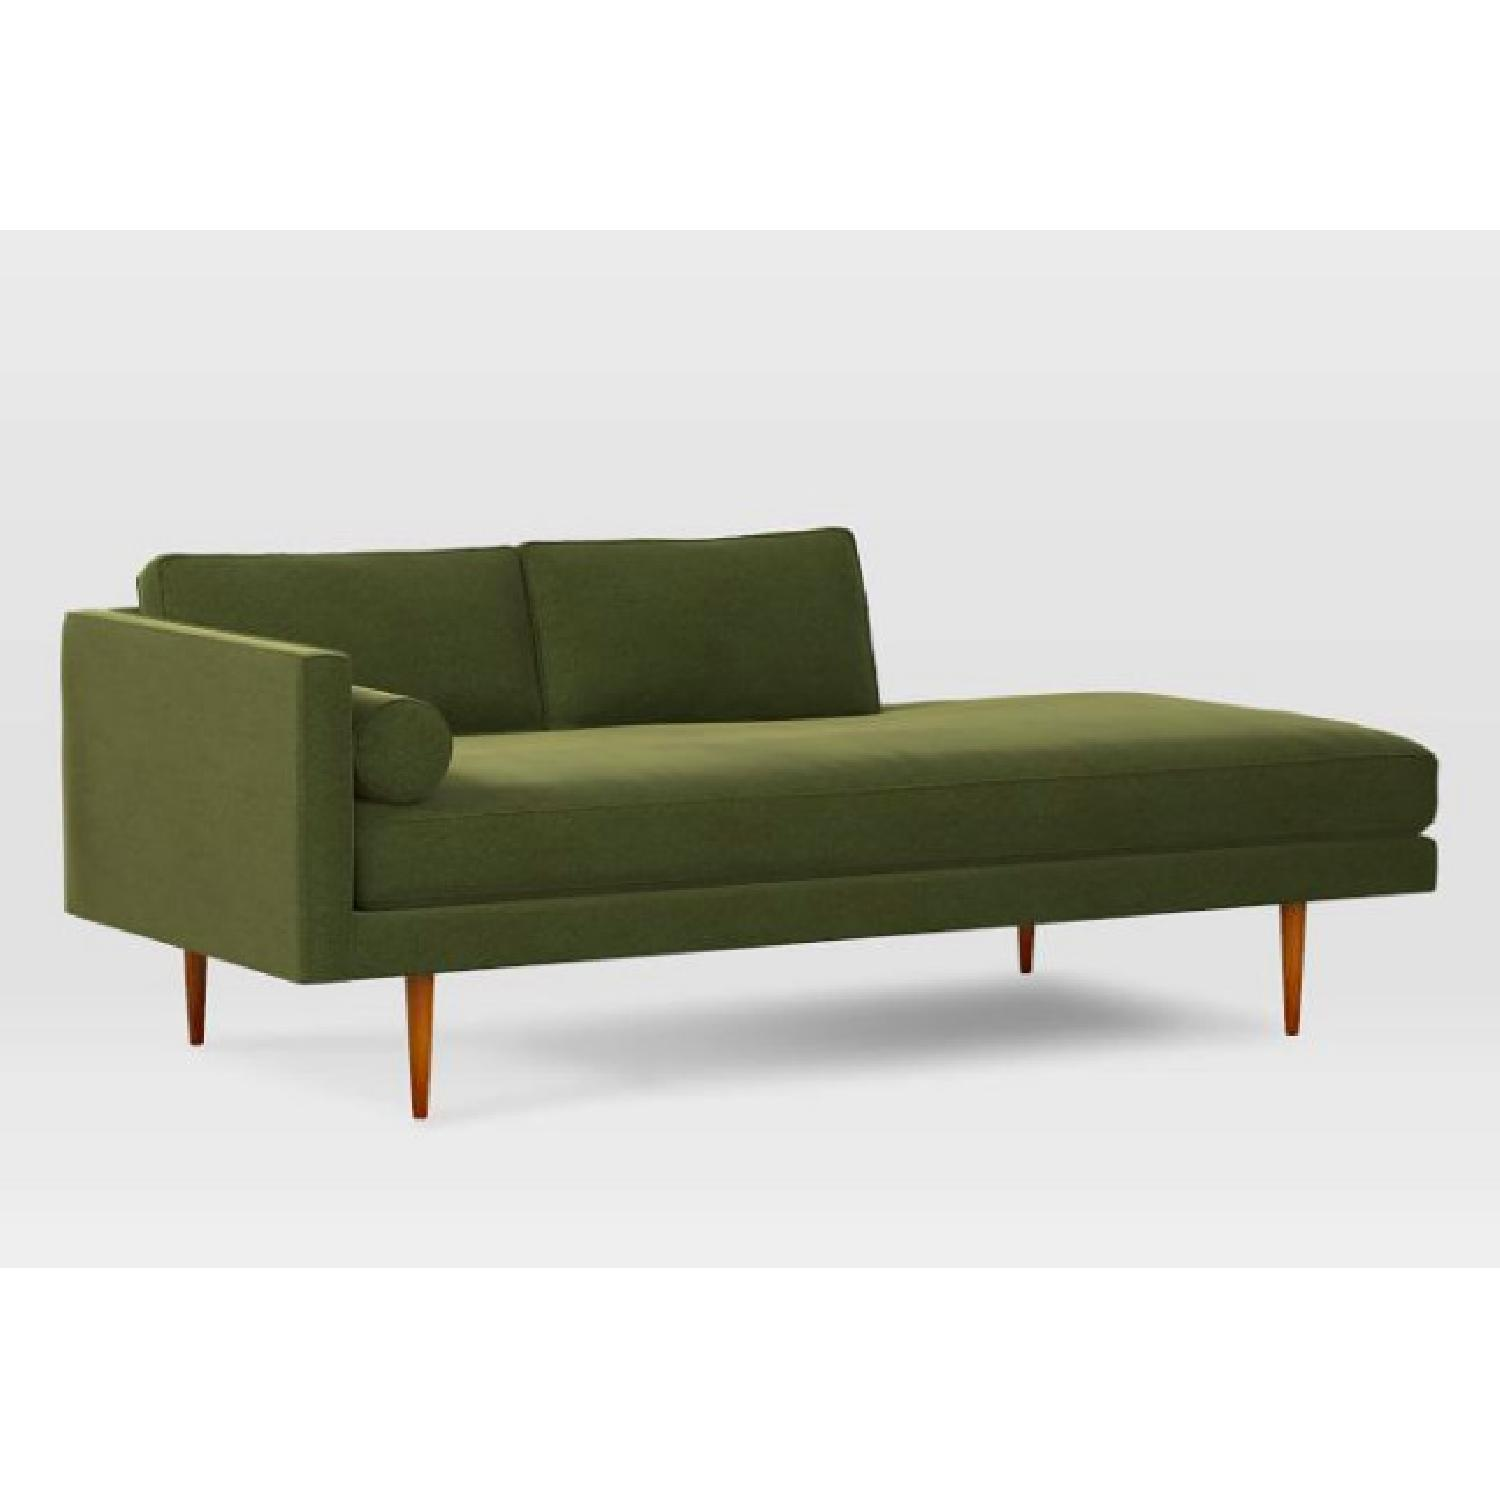 West Elm Mid Century Chaise in Olive Green - image-2